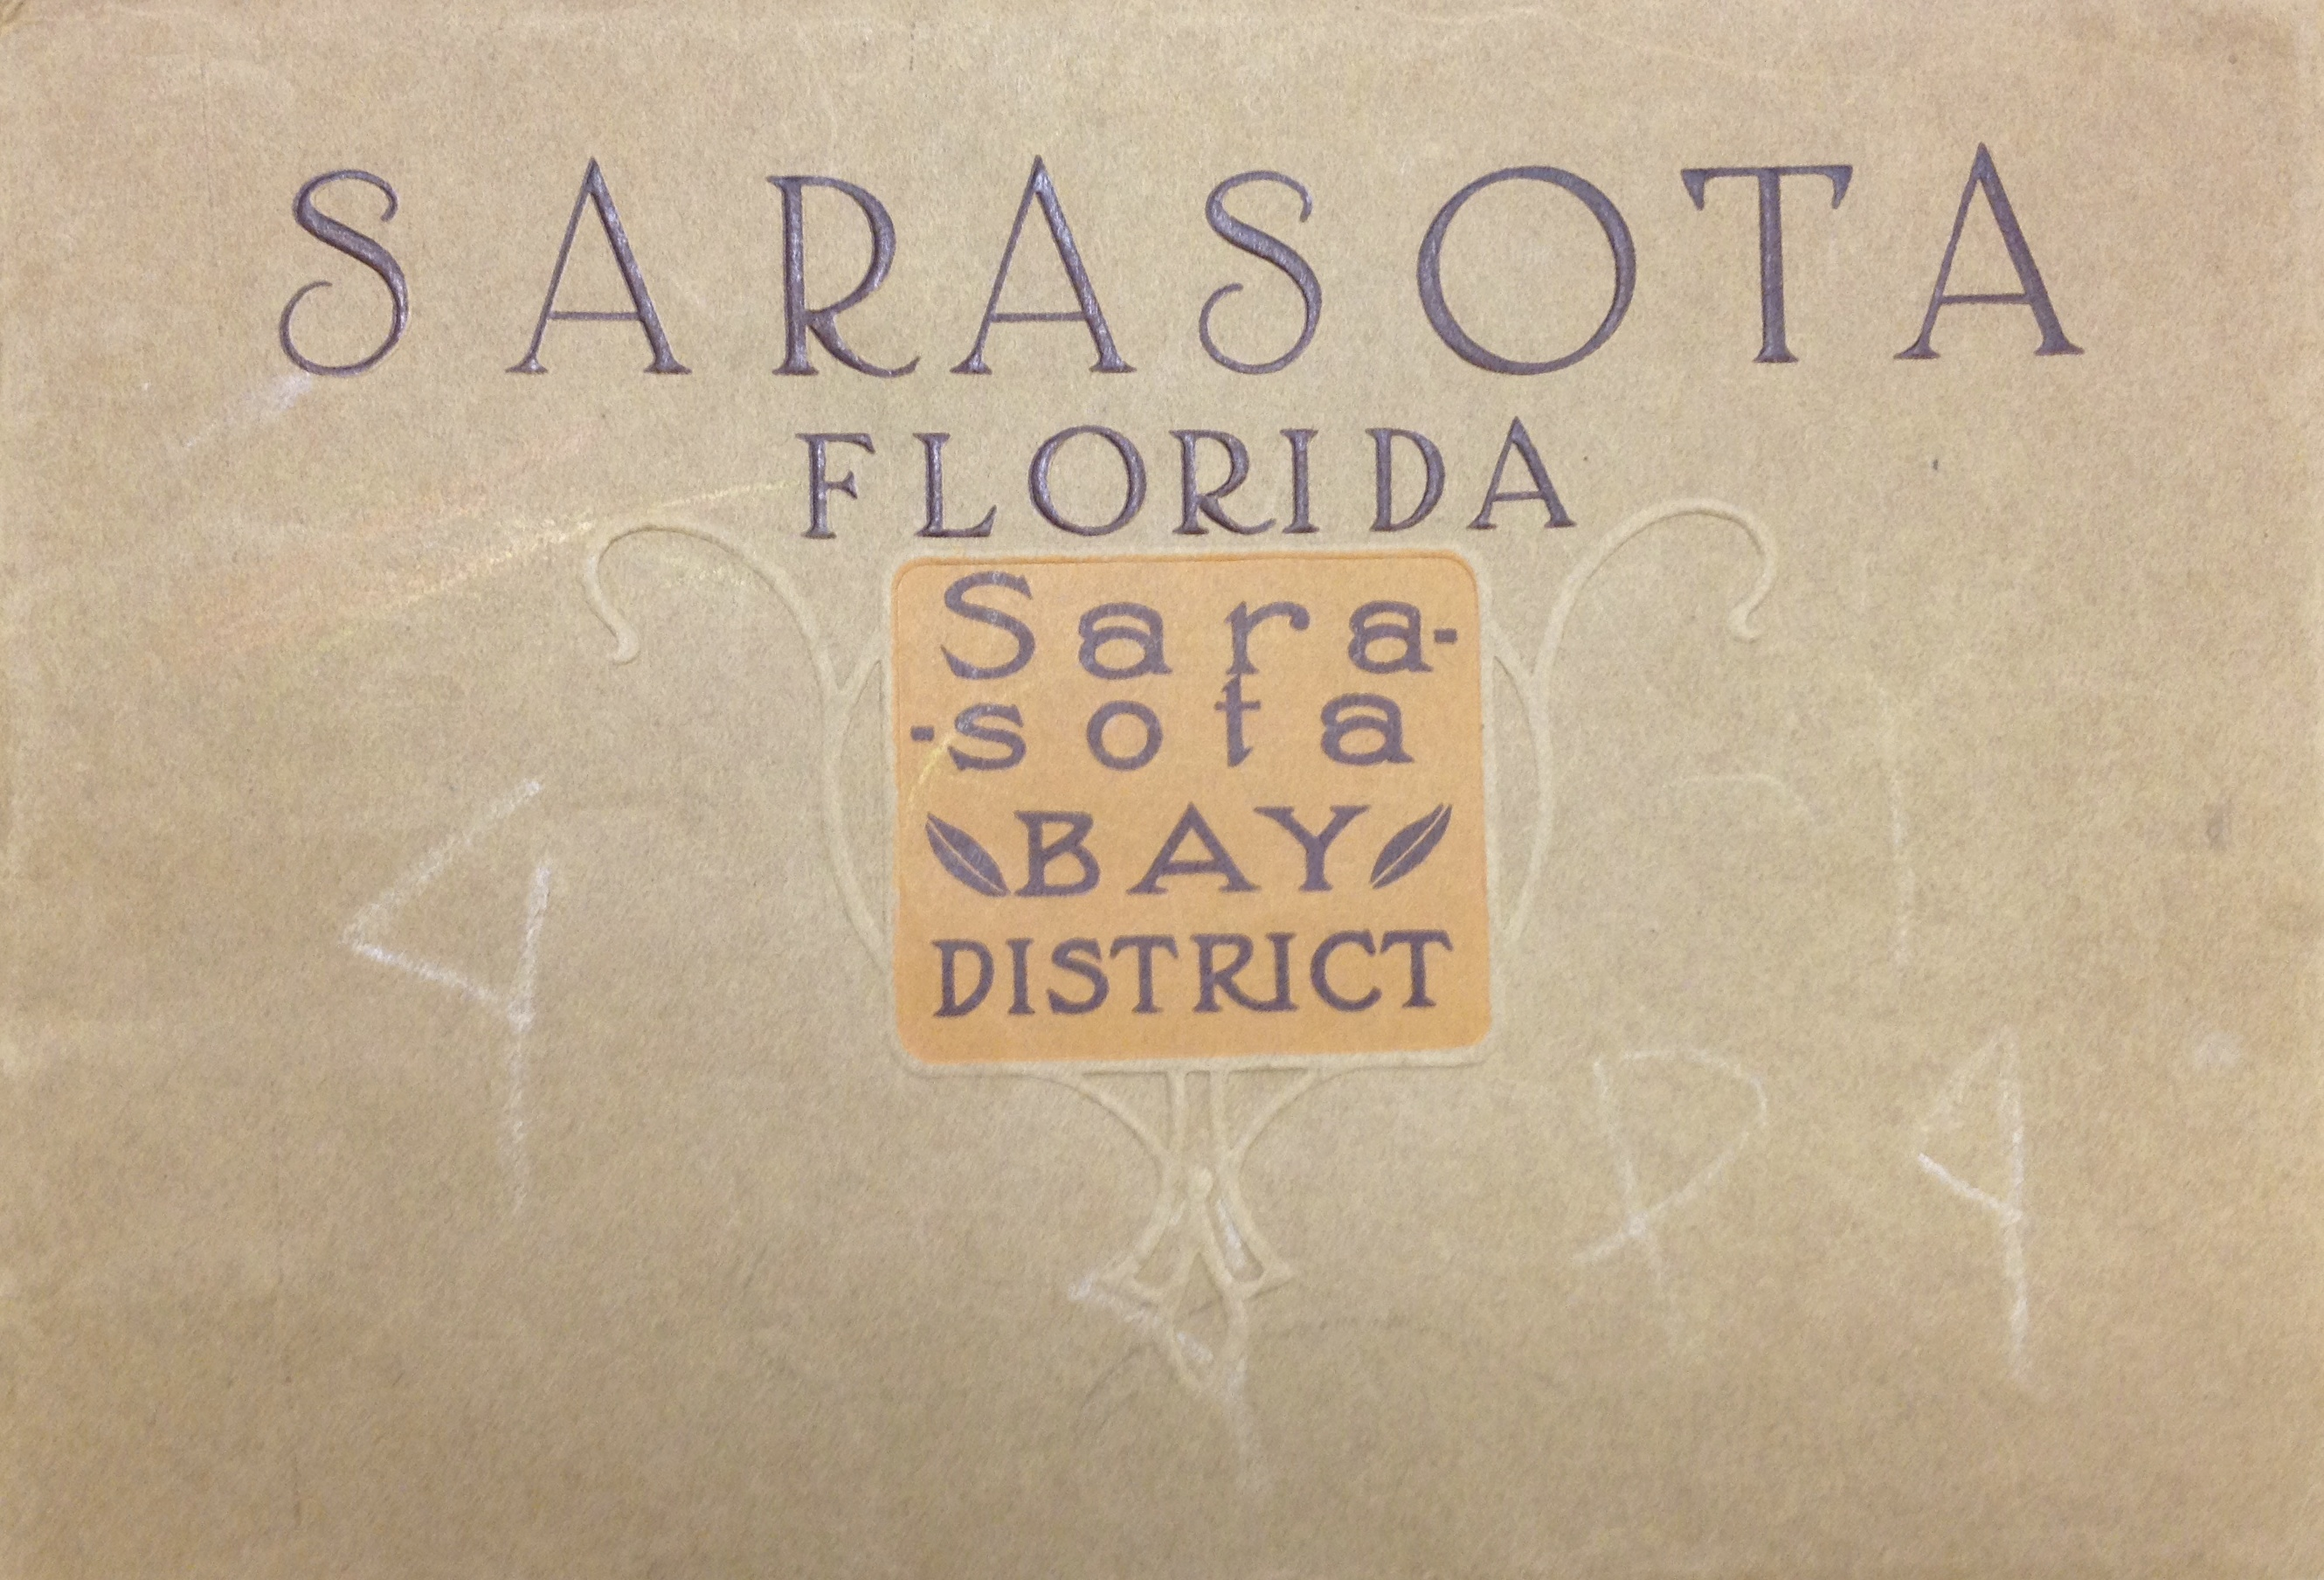 Sarasota, Florida and the Sarasota Bay District of Manatee County Brochure